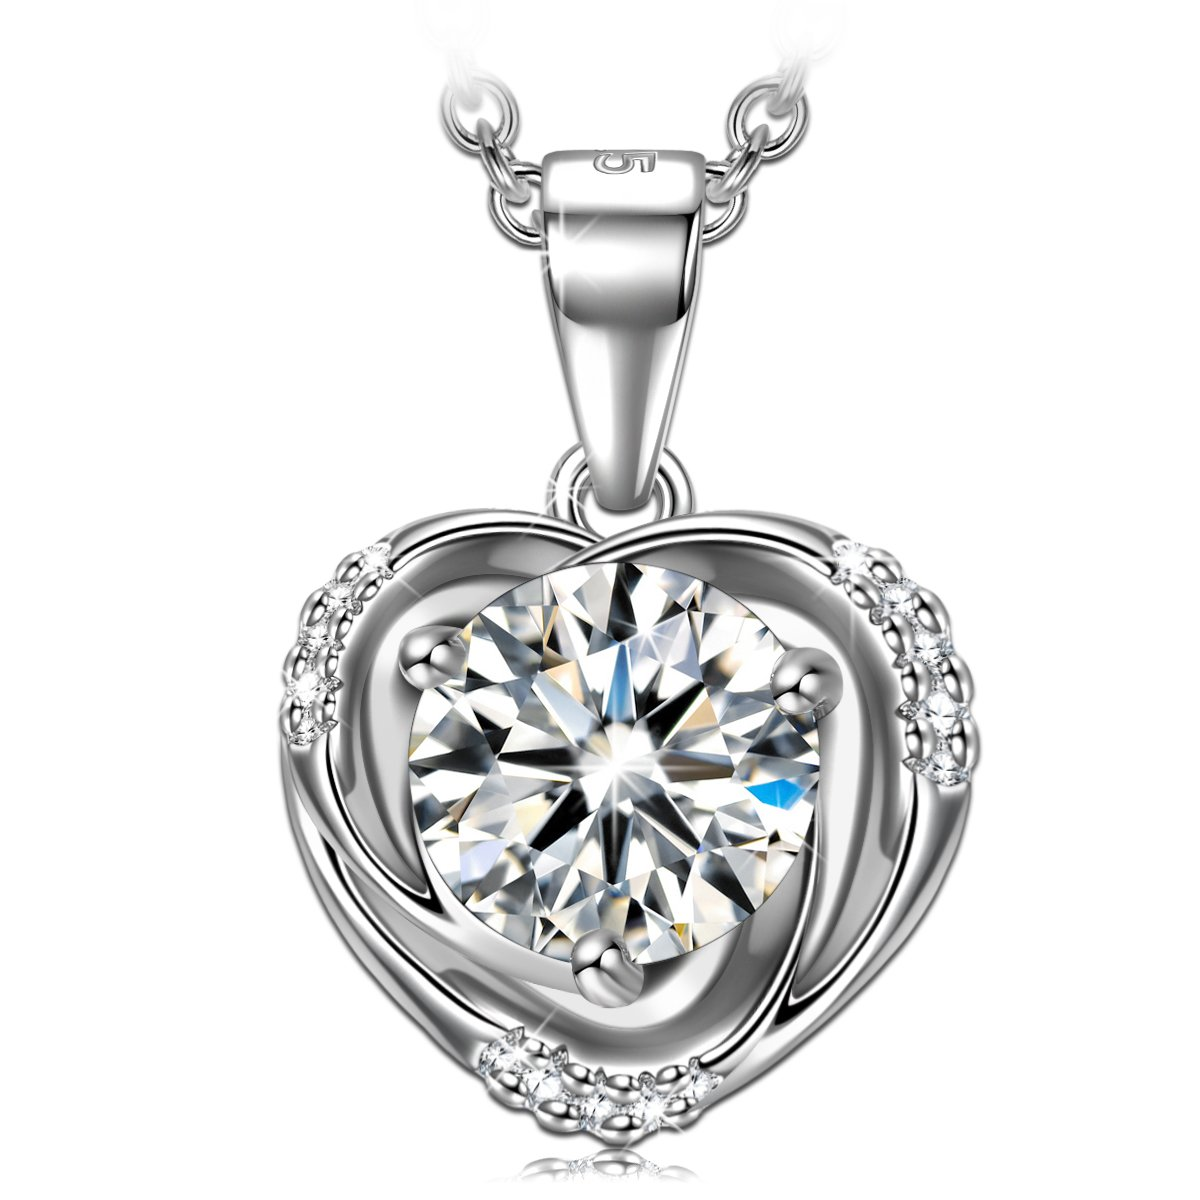 PN PRINCESS NINA Women Fine Jewelry Sterling Silver CZ Crystal Pendant Necklace for Her Birthday Gift for Wife Gift for Ladies